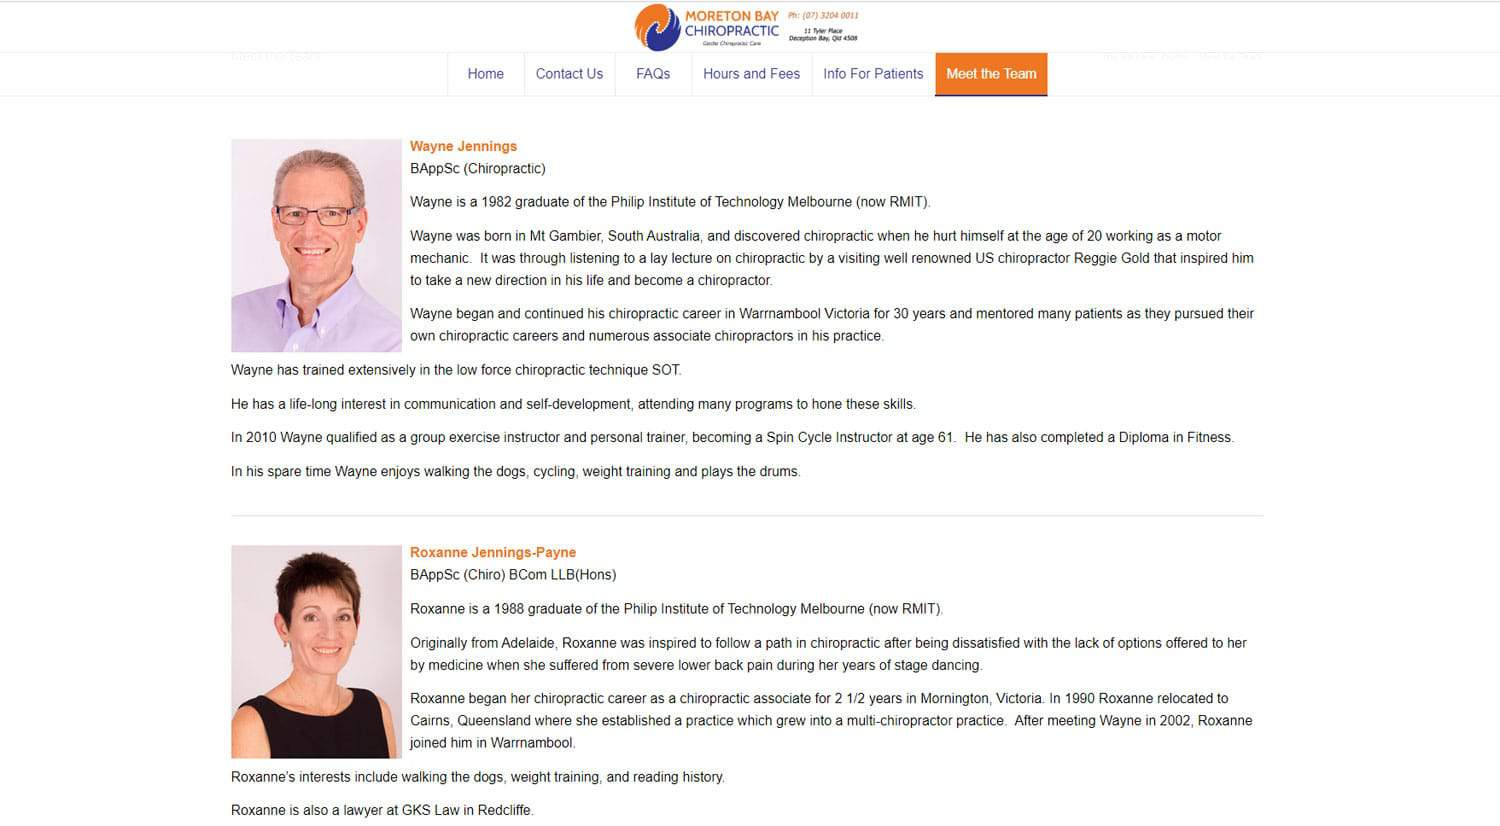 Moreton Bay Chiropractic Meet The Team Page